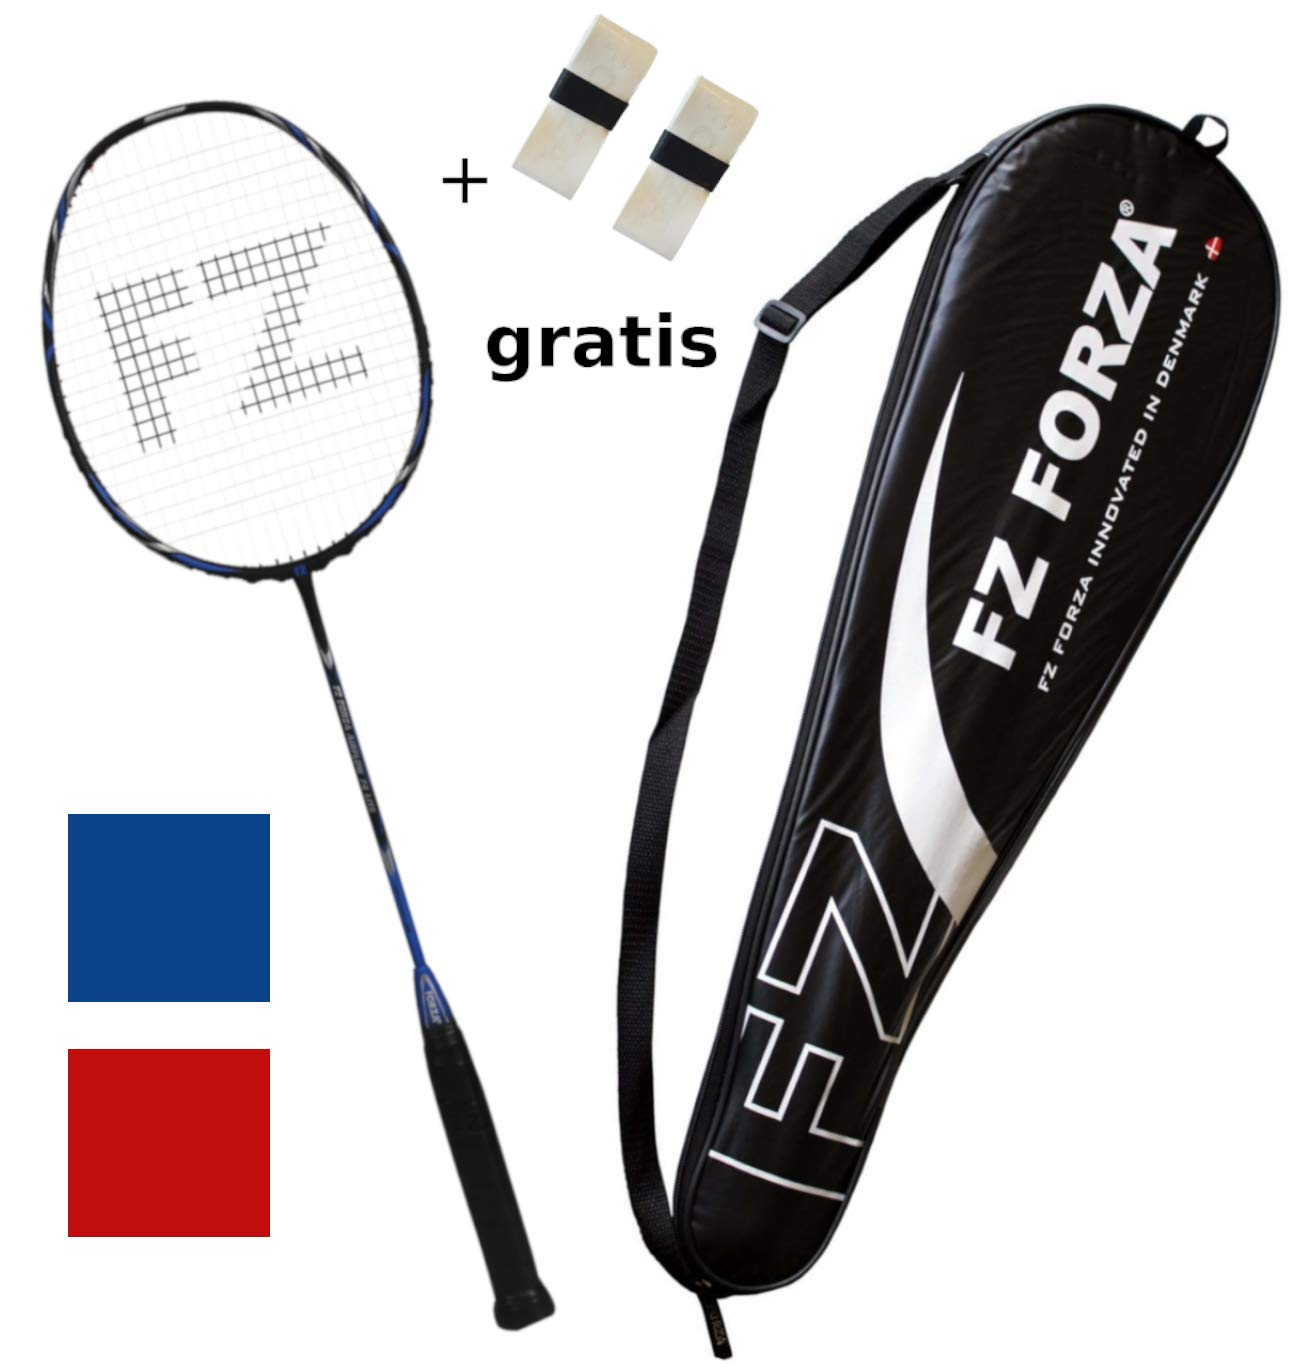 in red or blue FZ FORZA 2 overgrips for free fullsize racketcover strung badminton racket Airflow 74 Lite very light full graphite racquet for great control